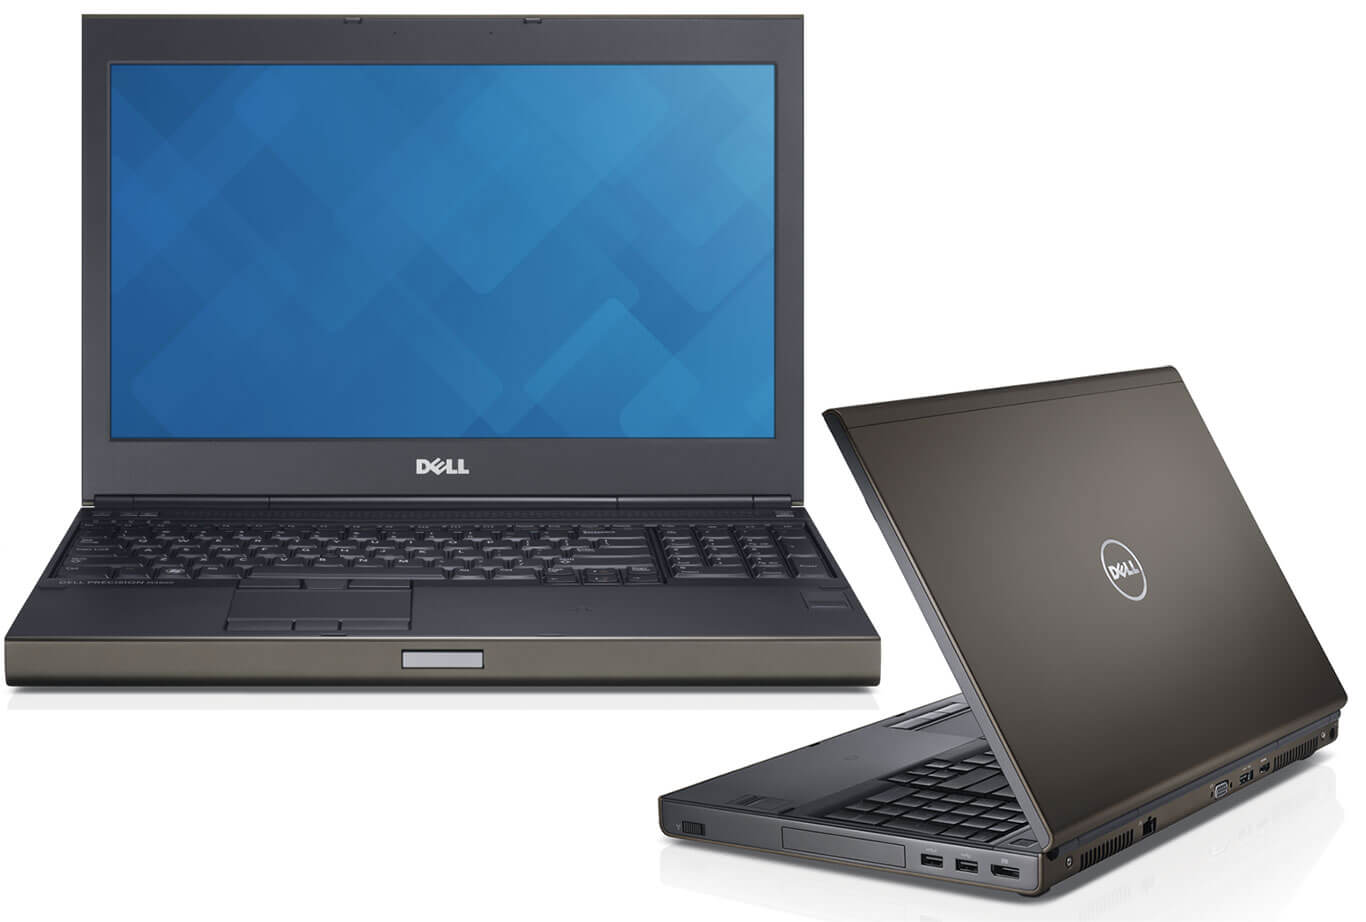 DELL PRECISION M6800 I7-4810MQ 2,8 / 16384 MB DDR3L / 1000 GB SSHD / DVD-RW / WINDOWS 10 PRO / 17.3